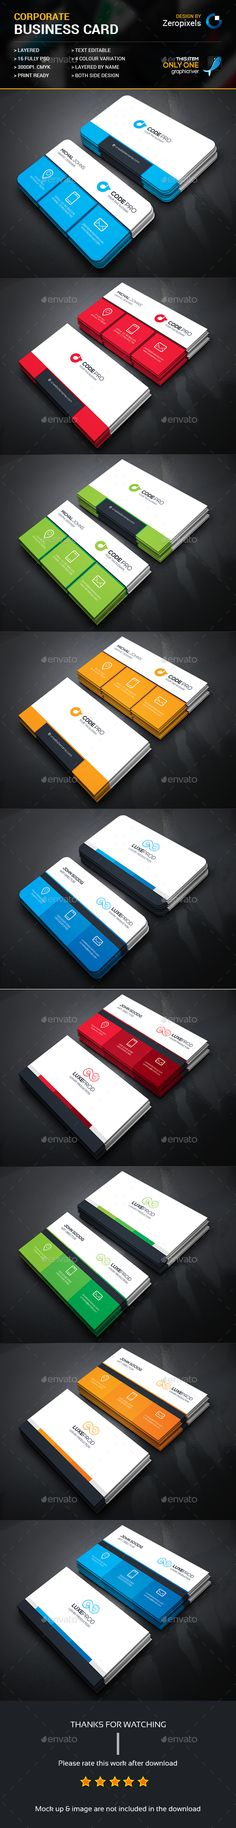 Business Card Bundle Templates PSD. Download here: http://graphicriver.net/item/business-card-bundle/16340927?ref=ksioks